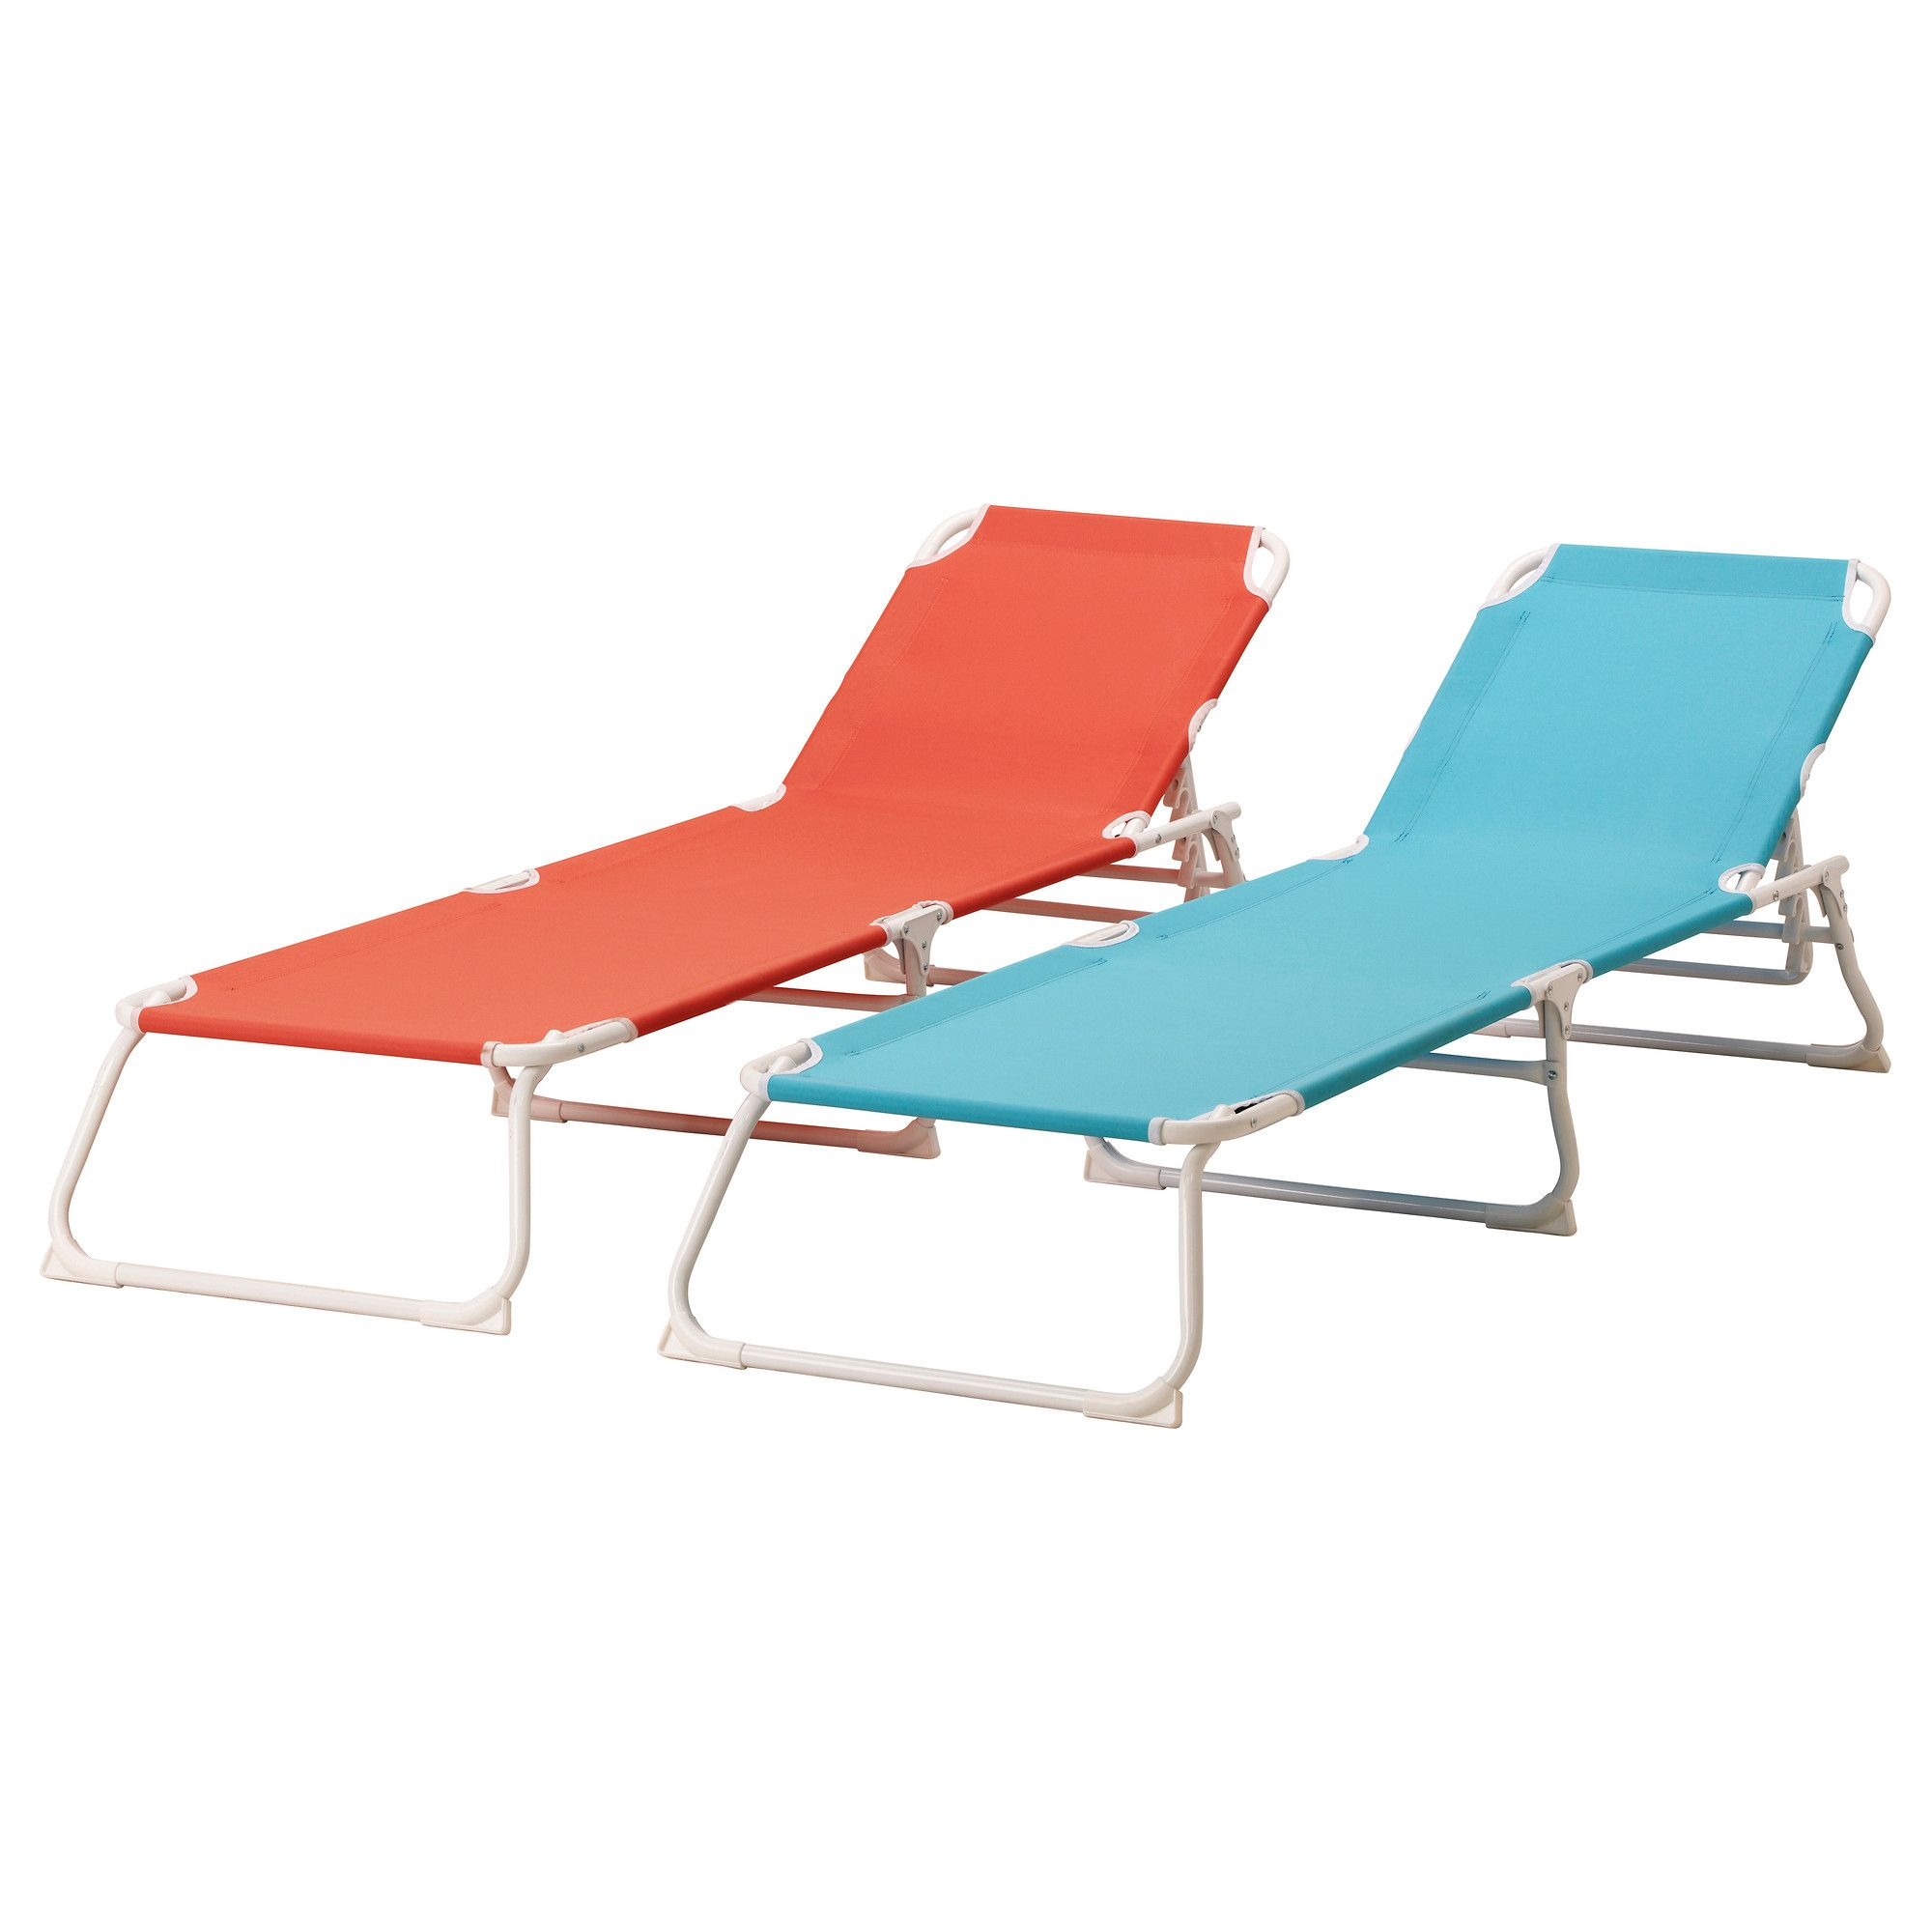 Modern outdoor lounge chairs - Modern Outdoor Lounge Chairs